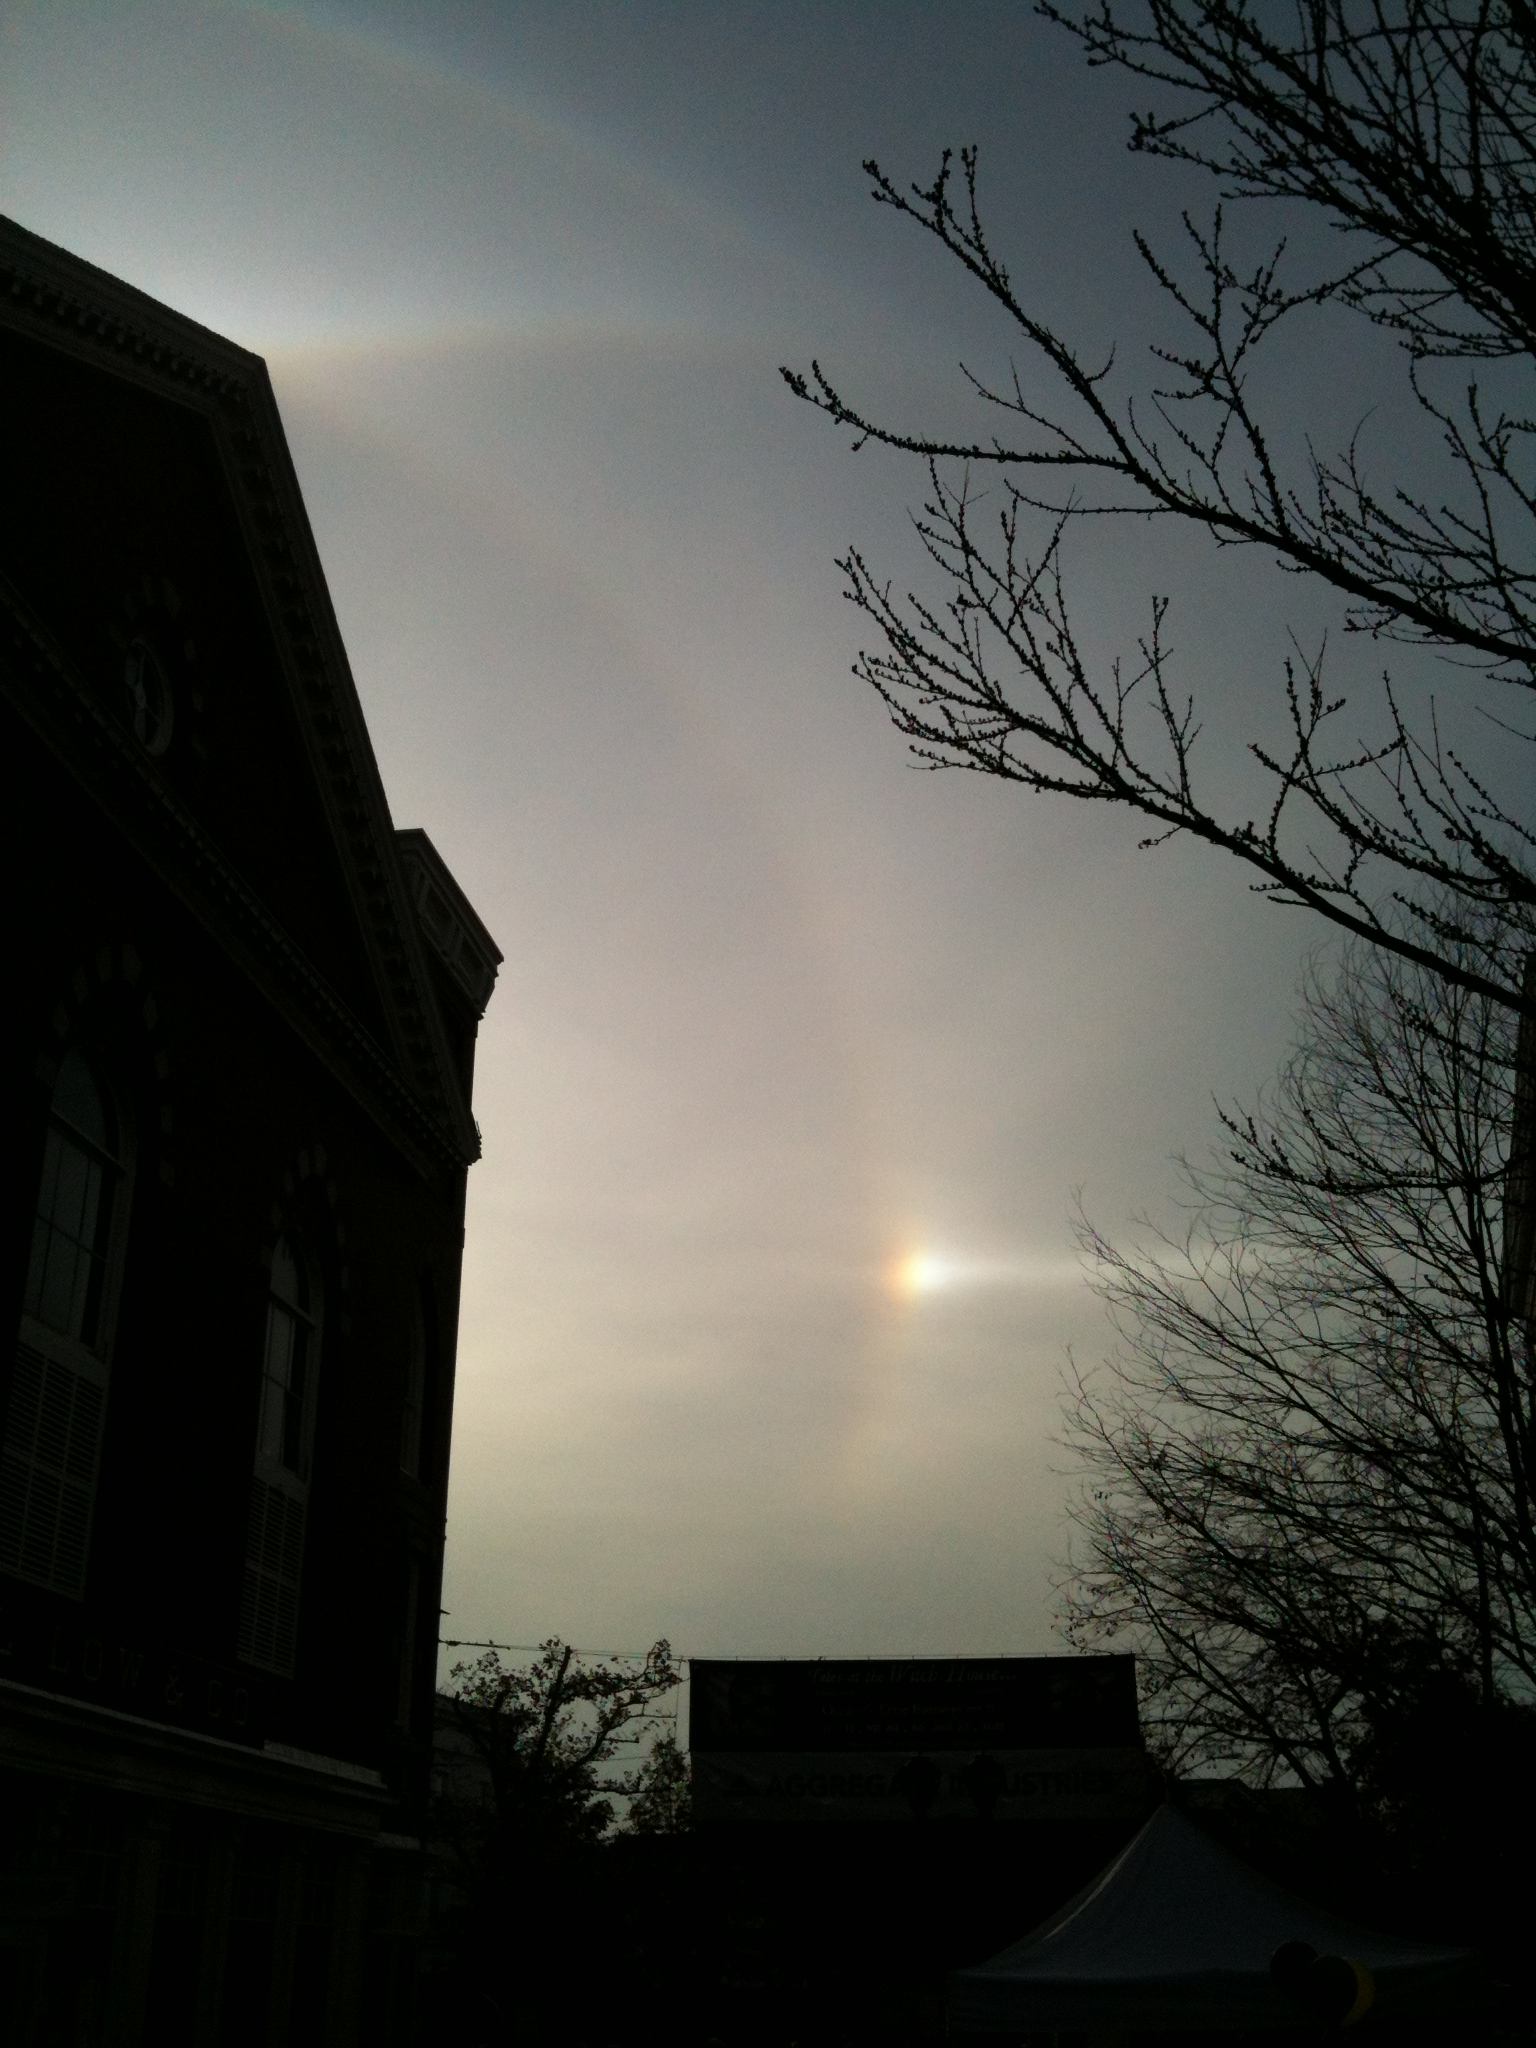 Solar_halos_and_sundog%2C_Salem%2C_MA%2C_Oct_27%2C_2012.JPG